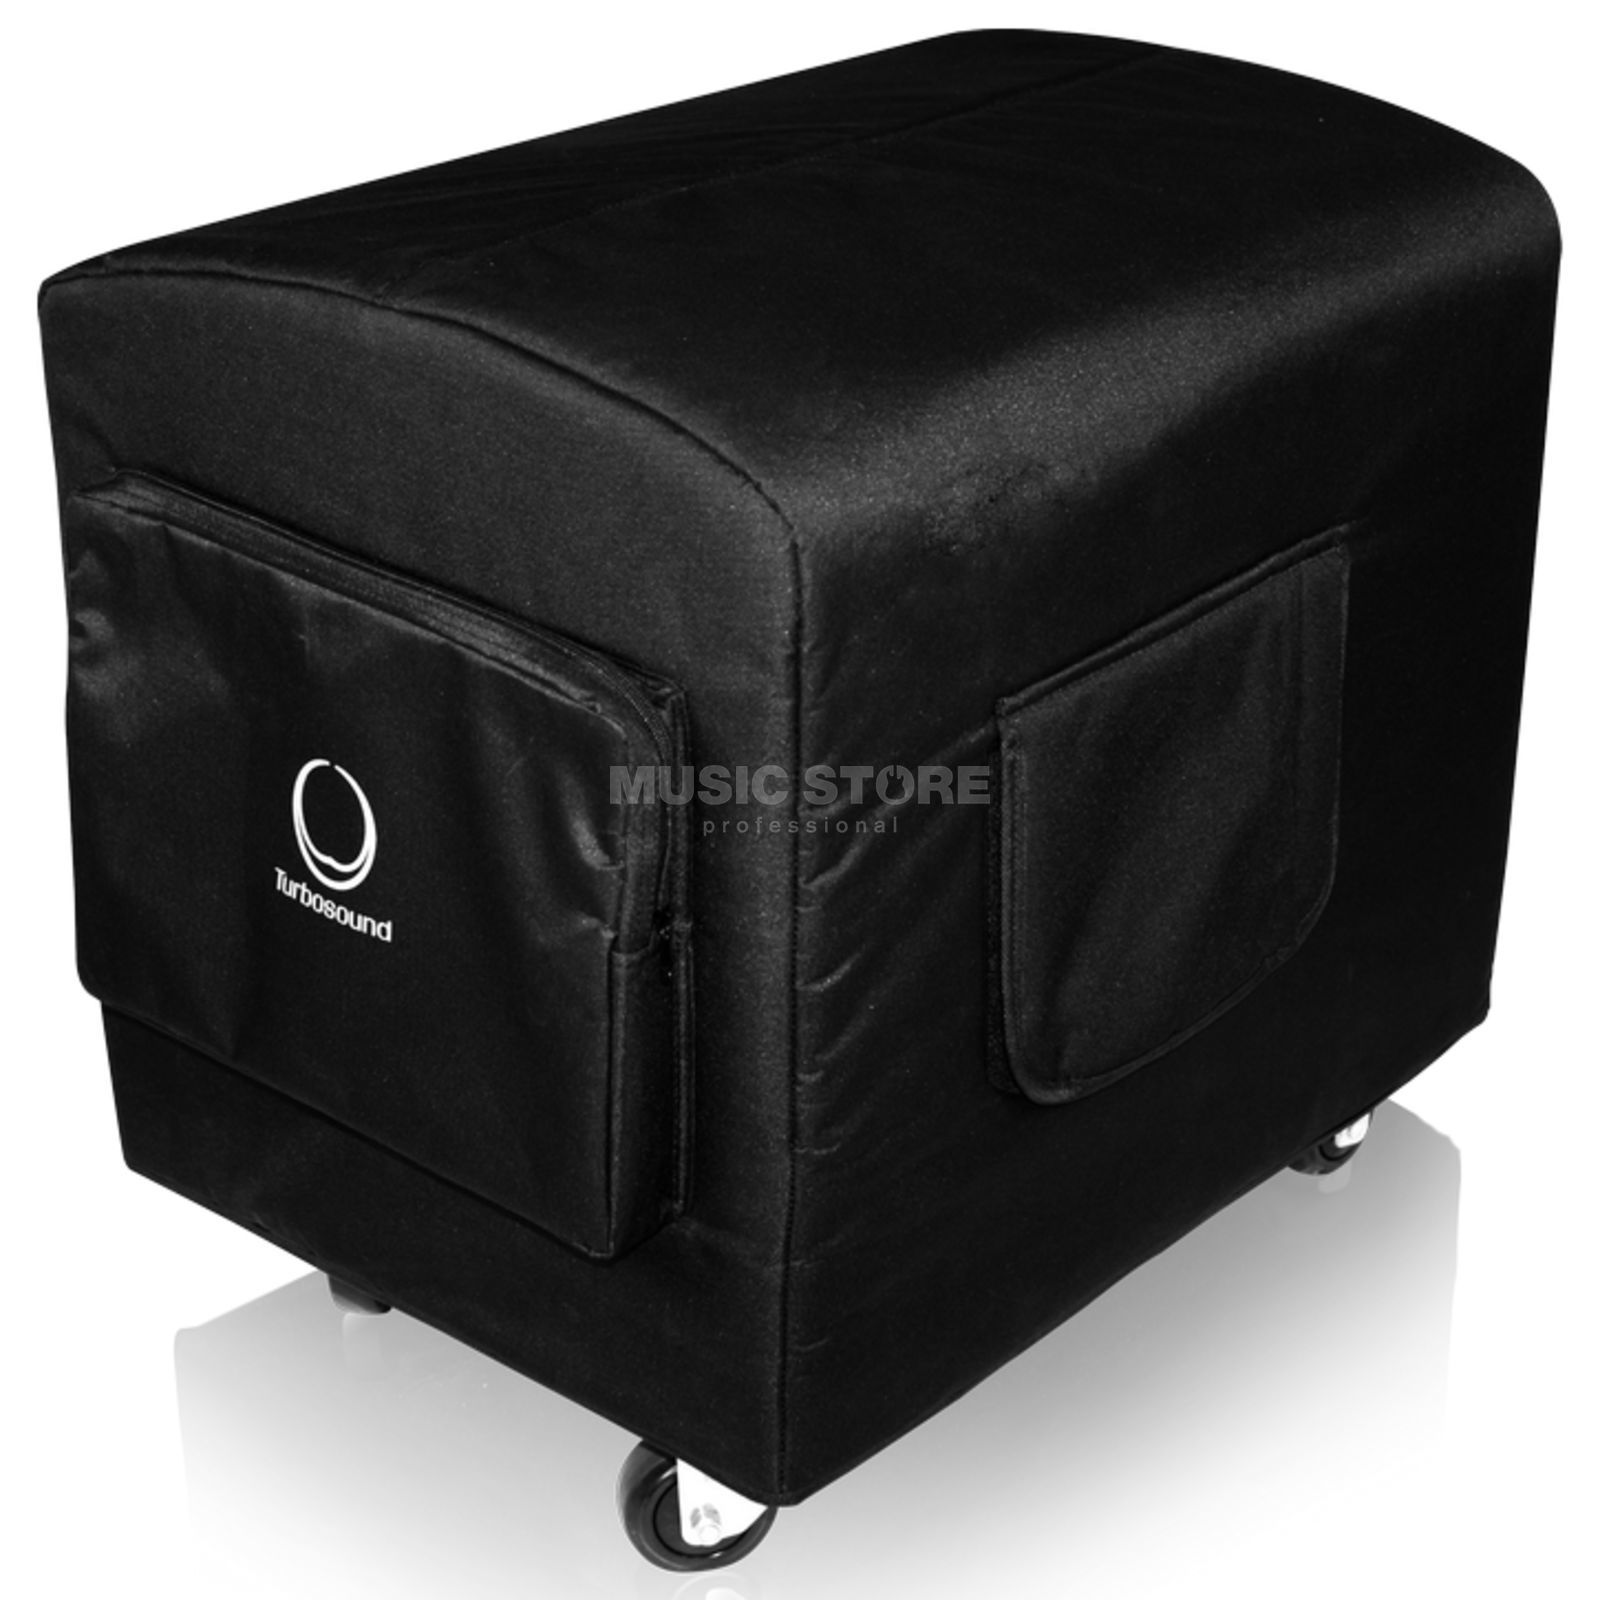 Turbosound TS-PC15B-2 Deluxe Protective Cover iQ15B Product Image